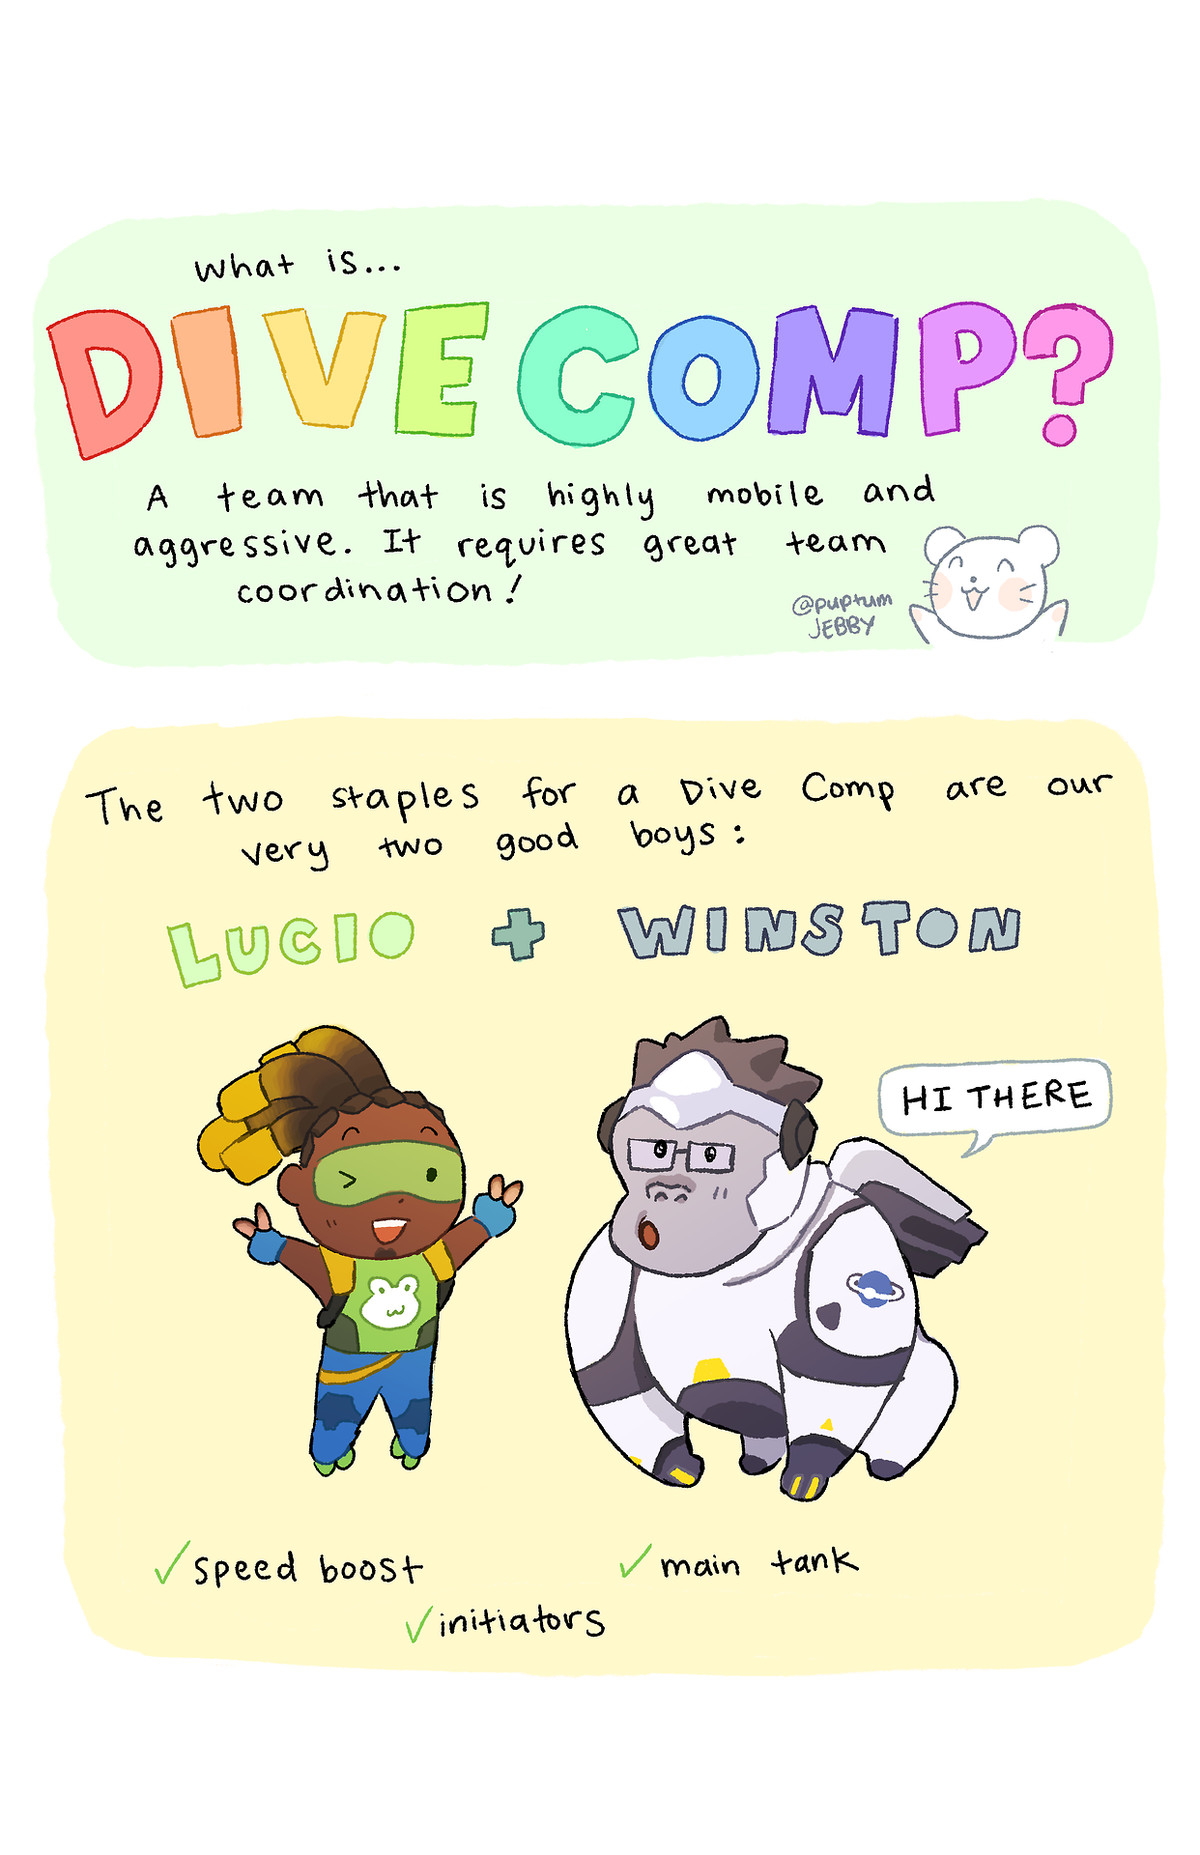 Lucio and Winston are the keystones of a dive comp.